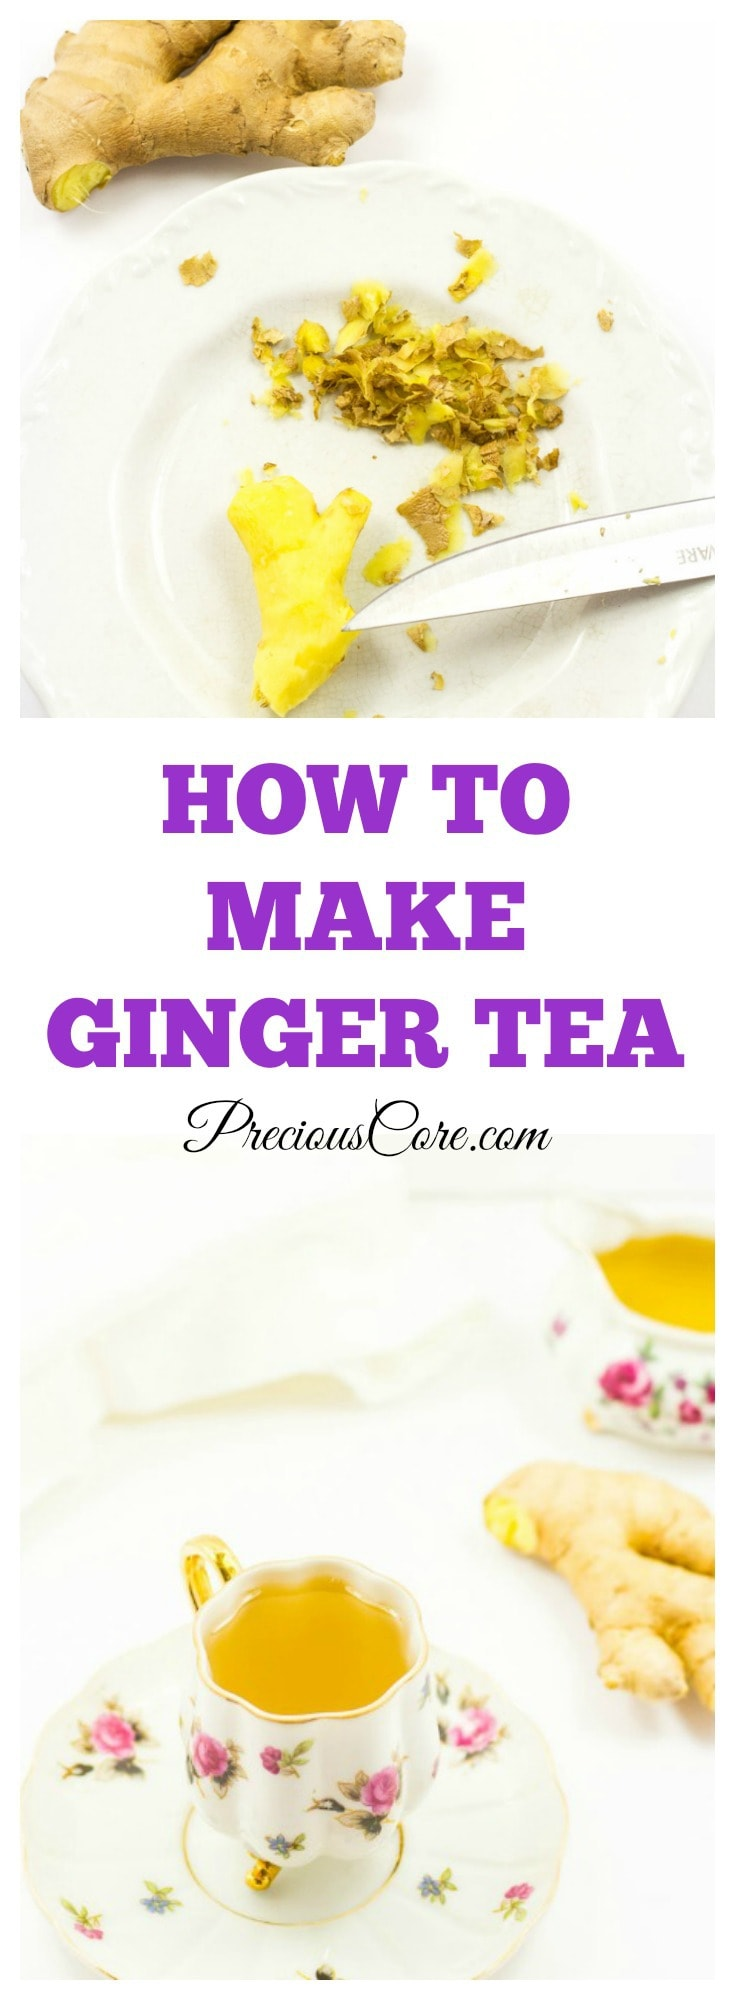 How to make ginger tea - Precious Core